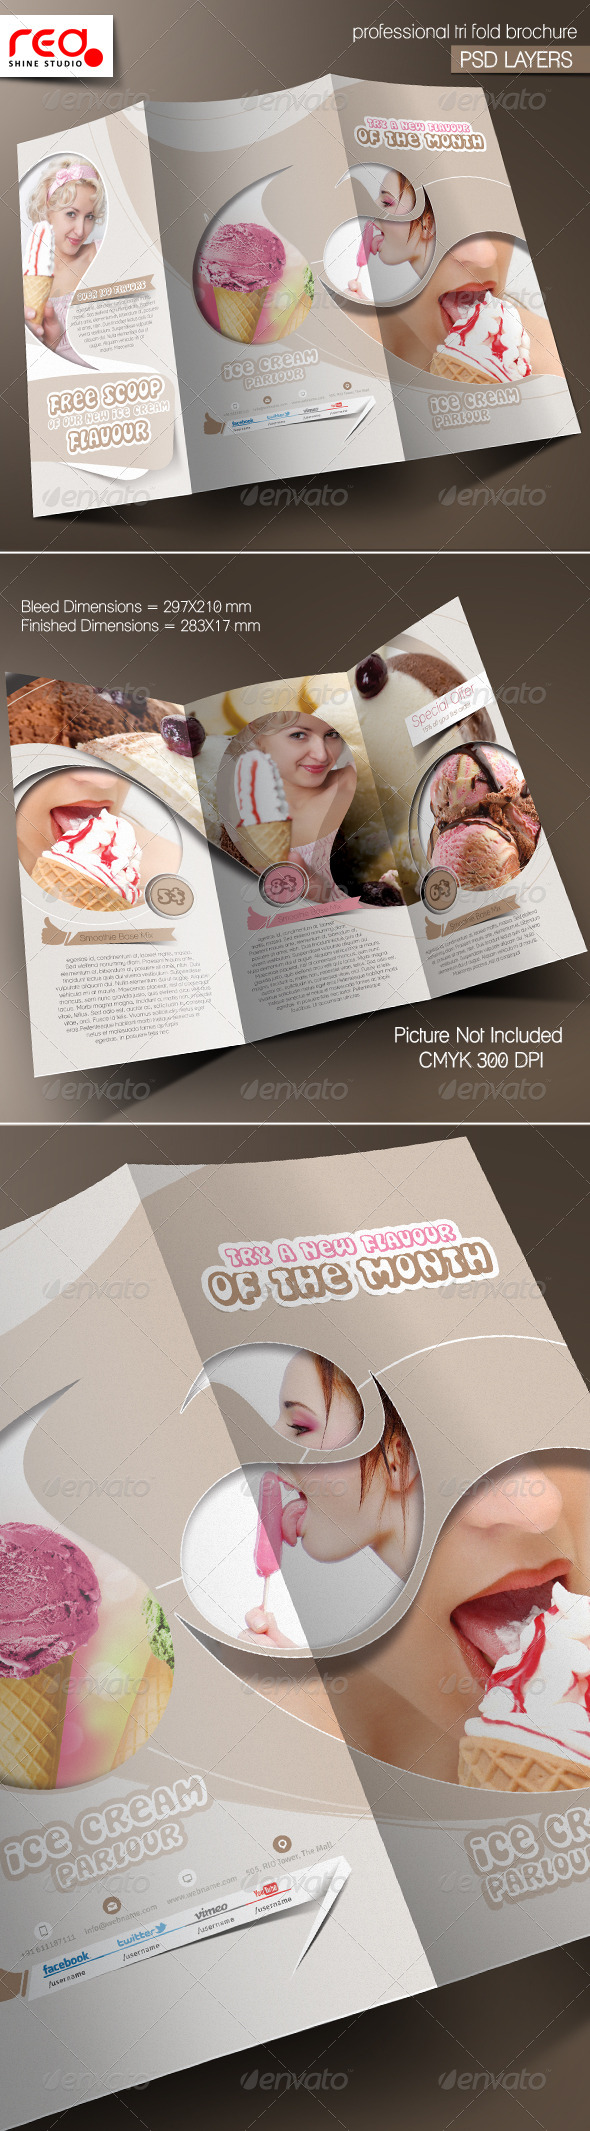 GraphicRiver Ice cream Shop Trifold Brochure Template 5442523